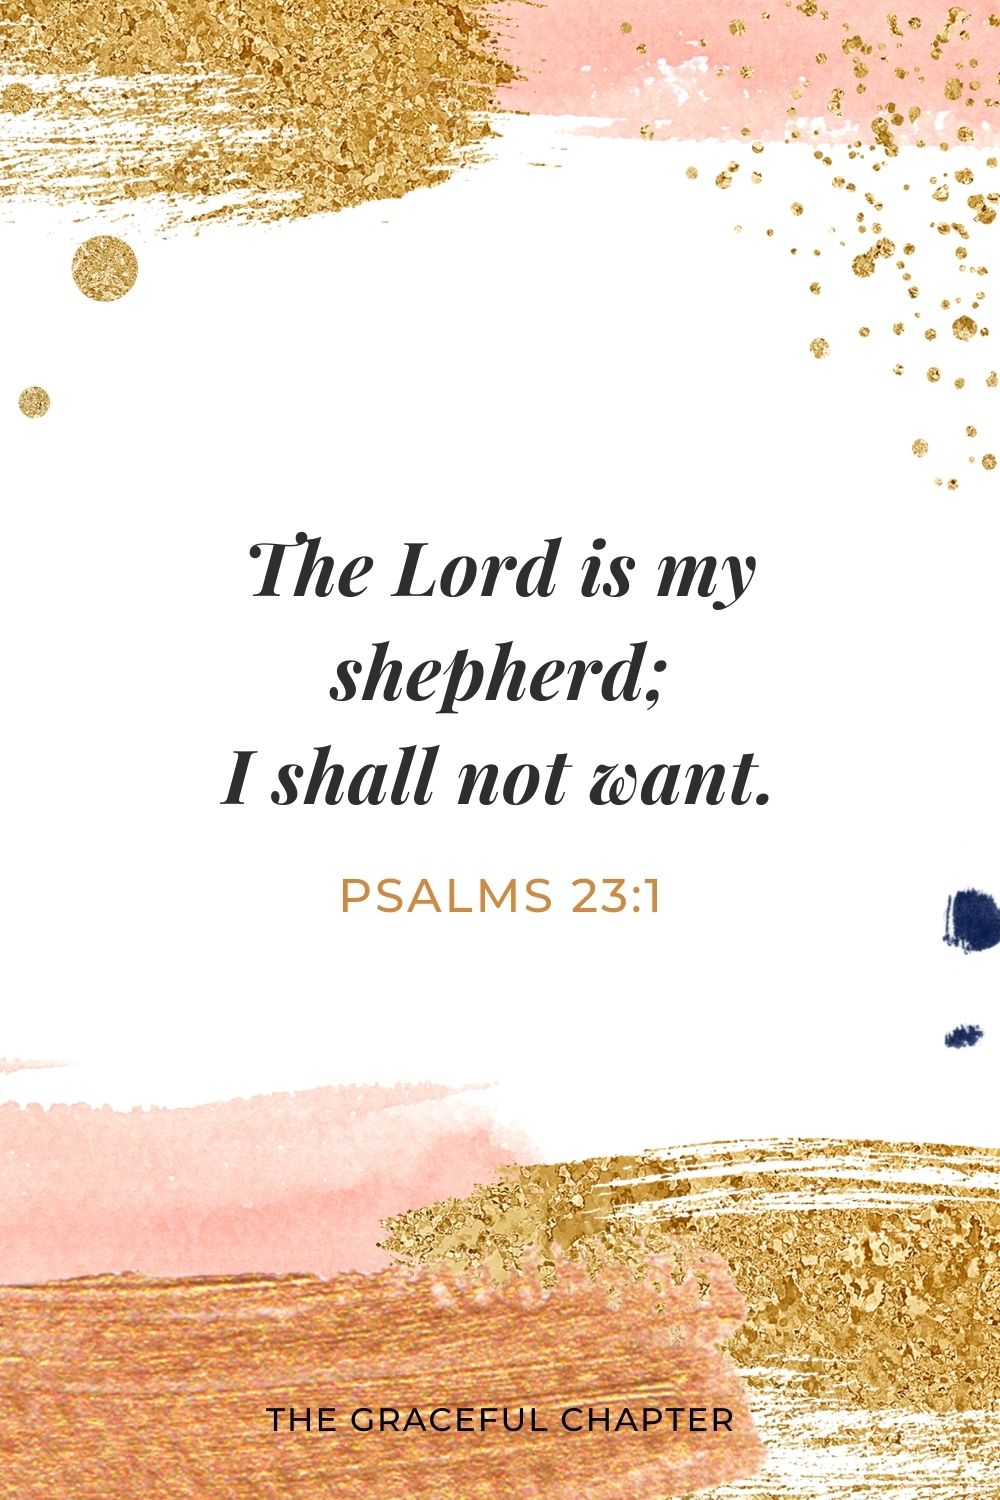 The Lord is my shepherd; I shall not want. Psalms 23:1